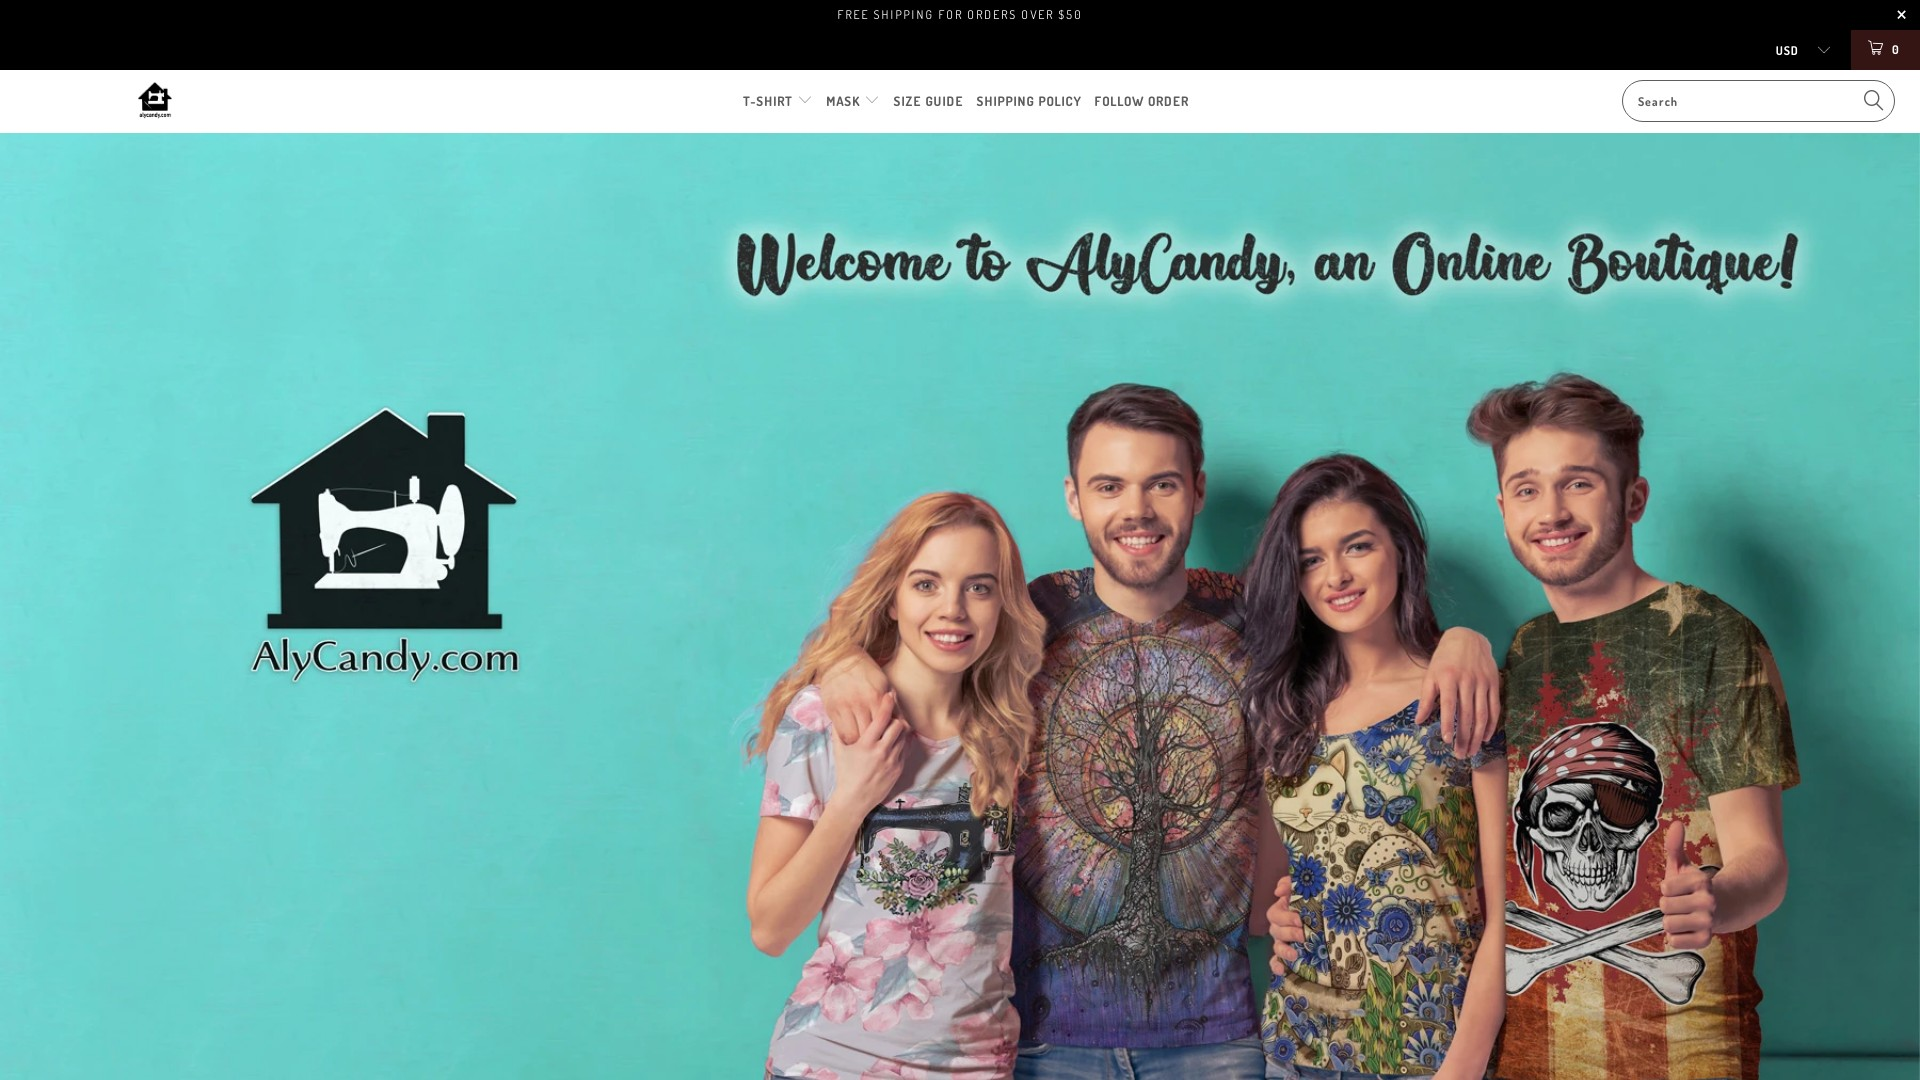 Is Alycandy.com a Scam? See the Review of the Online Store